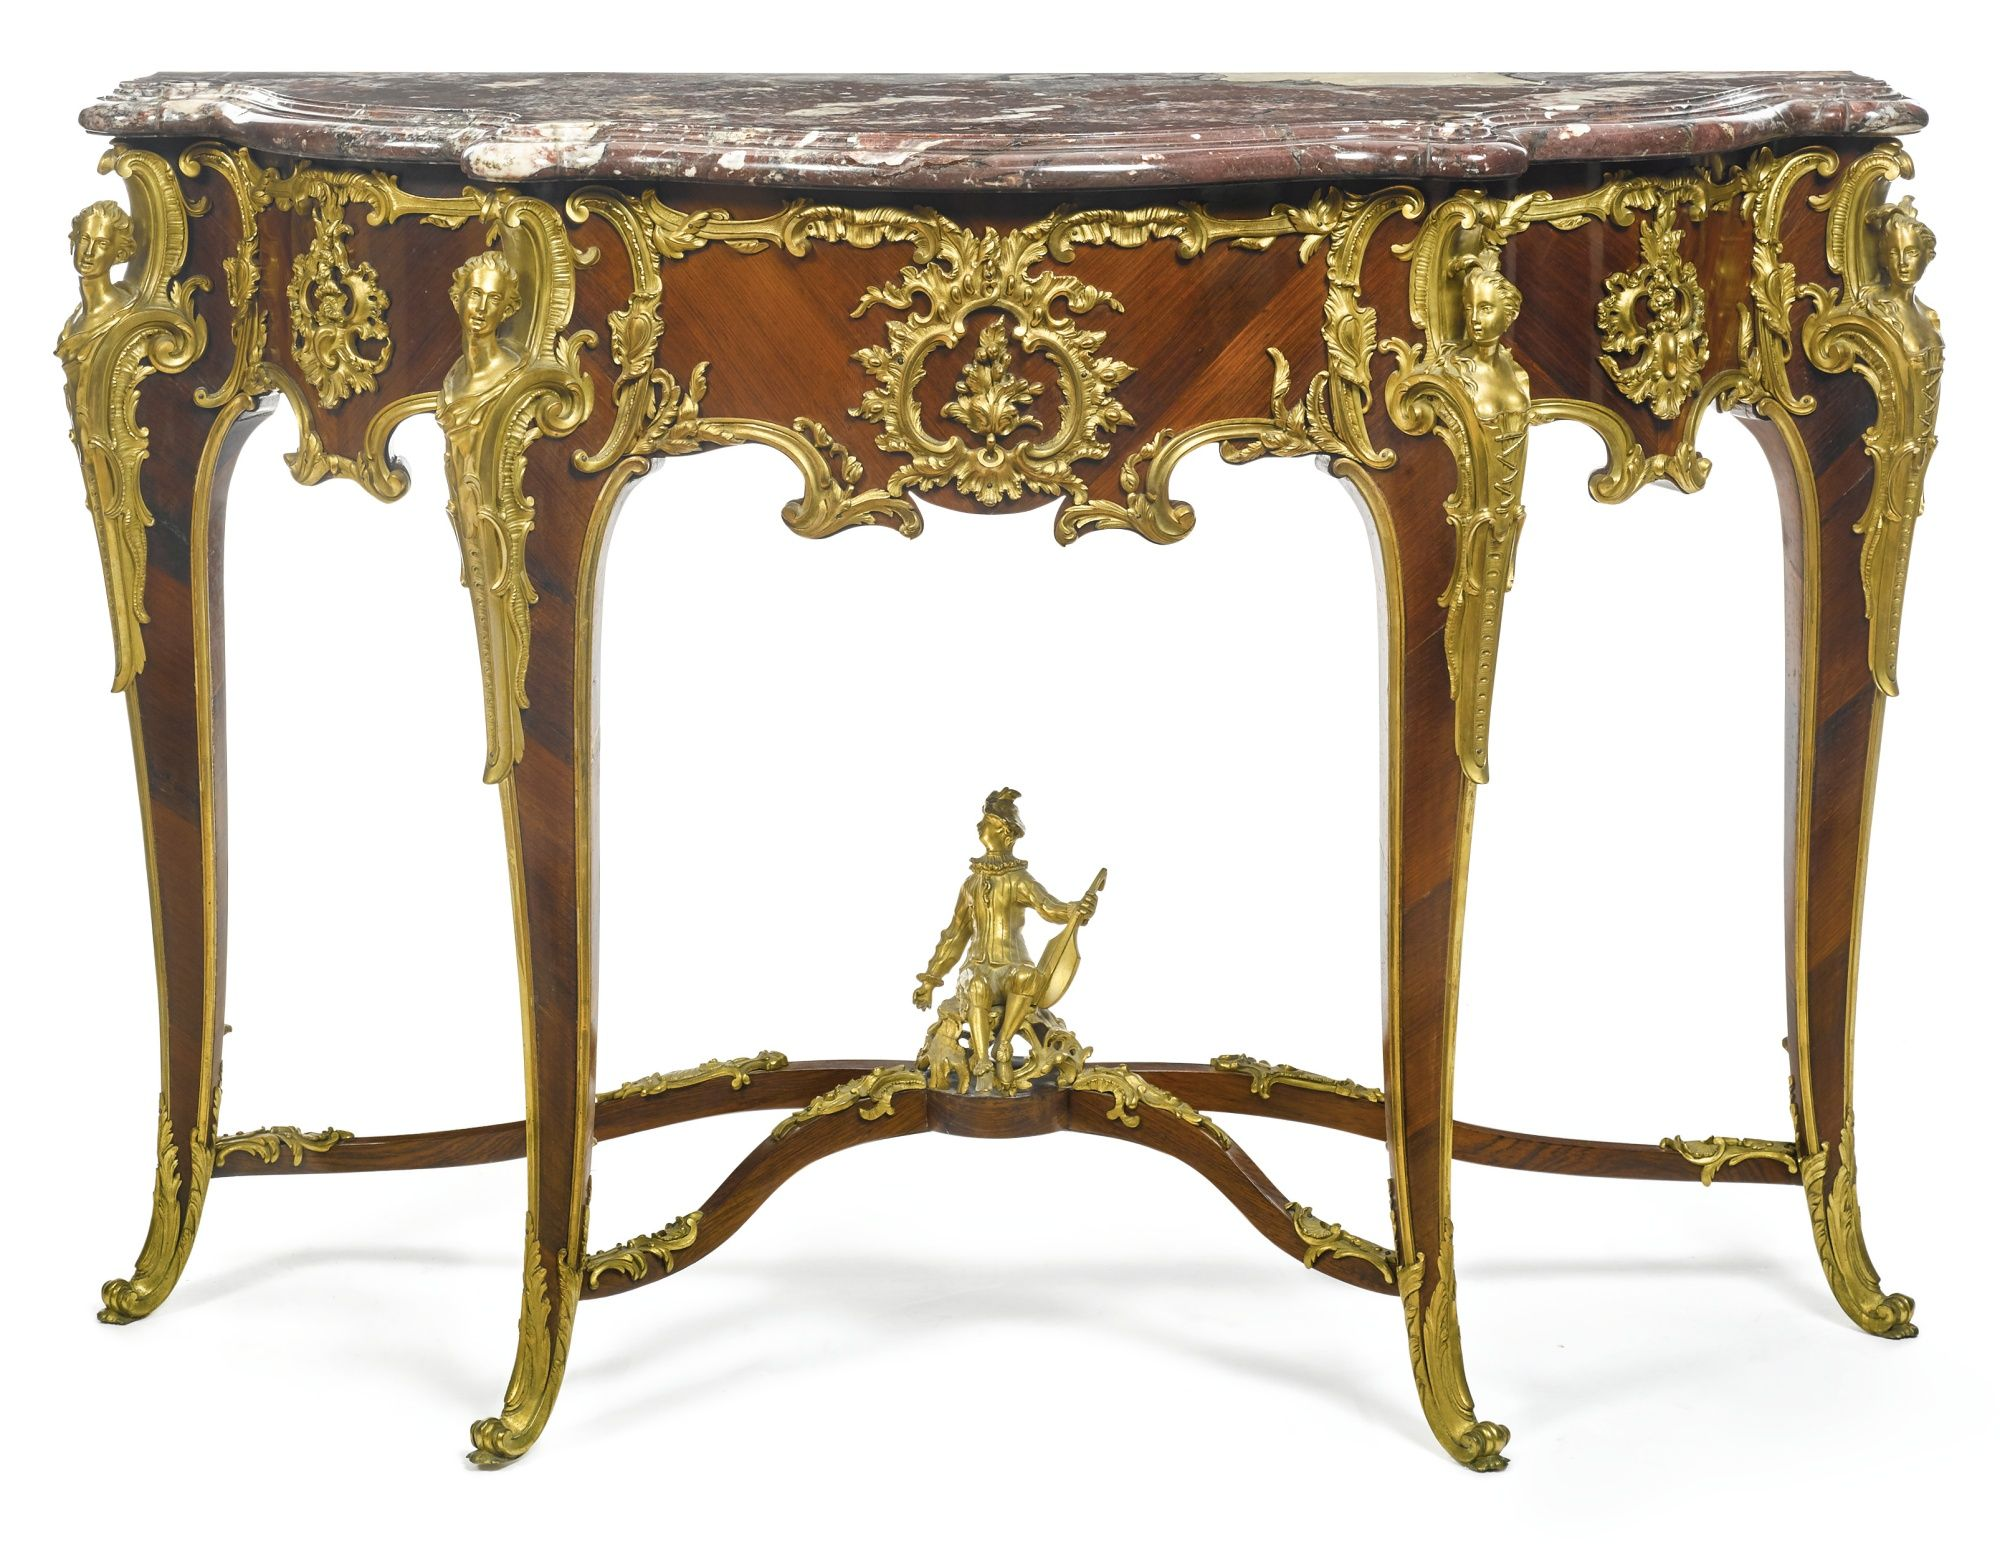 Louis xv dining table - Fran Ois Linke French 1855 1946 A Louis Xv Style Gilt Bronze Mounted Kingwood Console